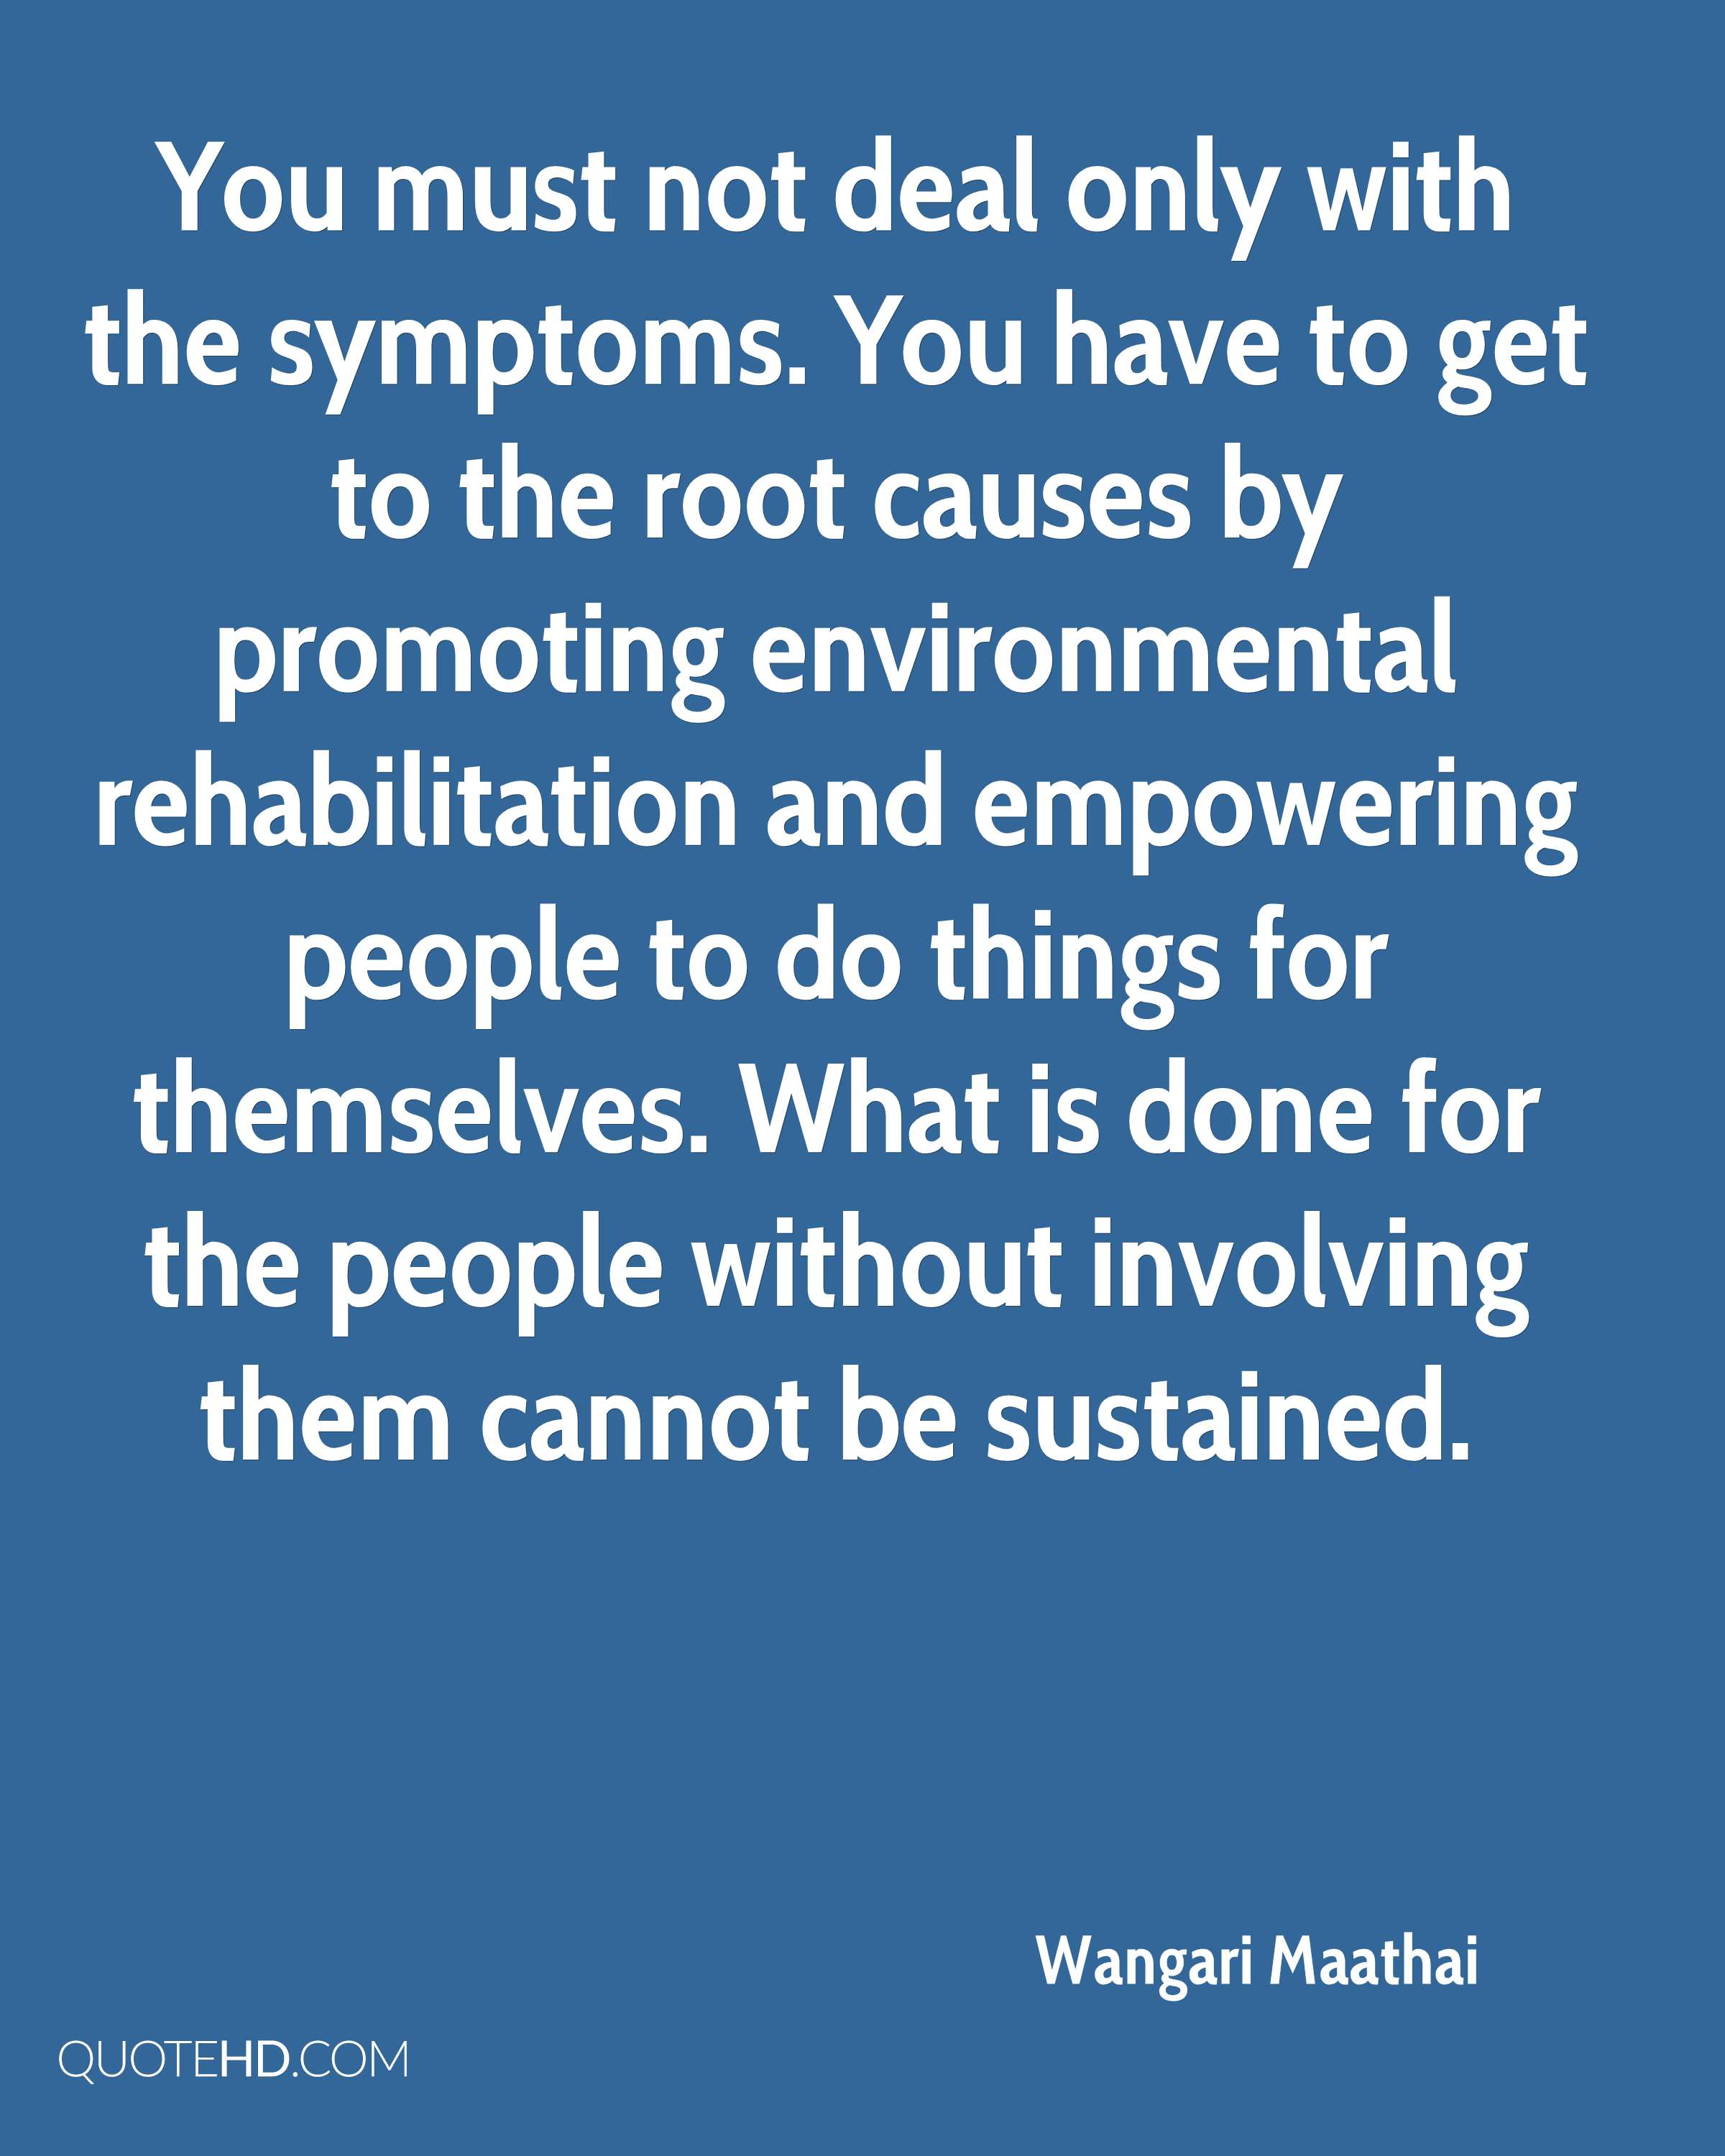 You must not deal only with the symptoms. You have to get to the root causes by promoting environmental rehabilitation and empowering people to do things for themselves. What is done for the people without involving them cannot be sustained.